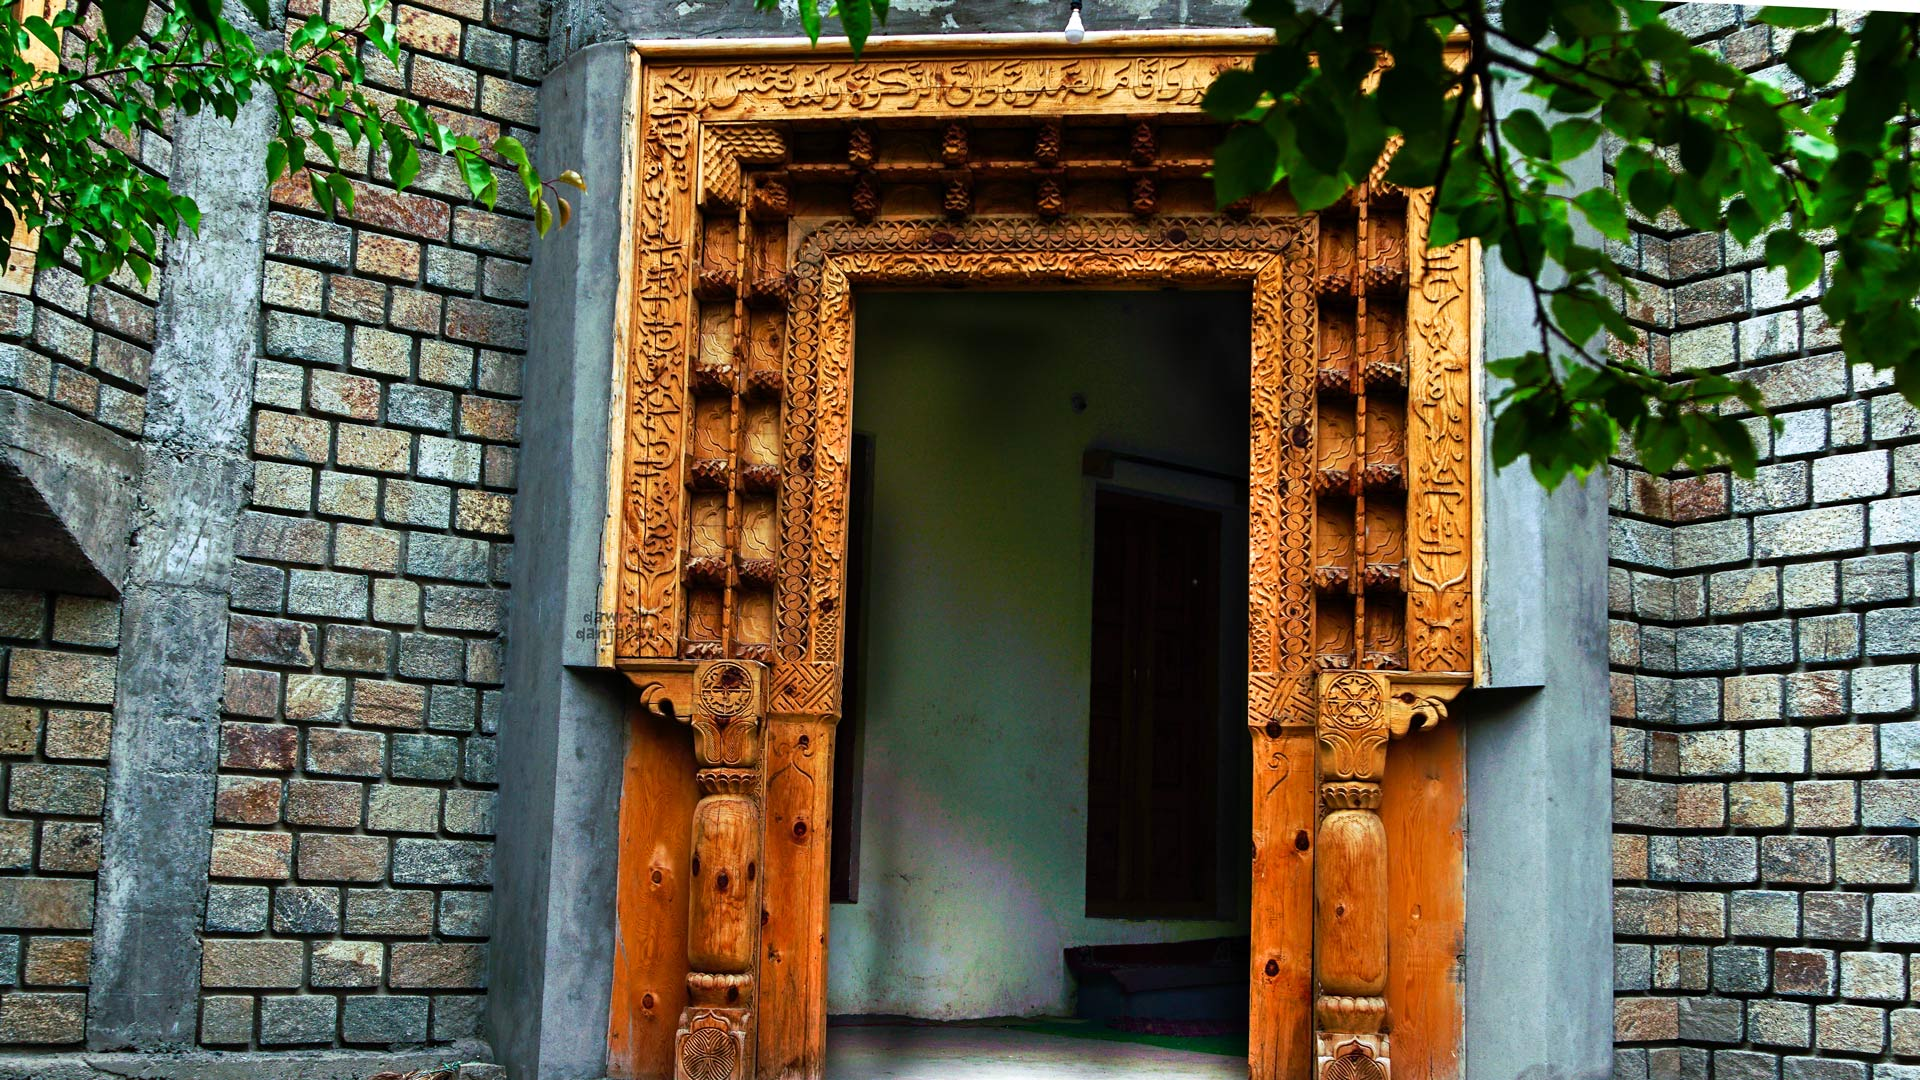 A traditional Wooden Door in Turtuk Village of Leh